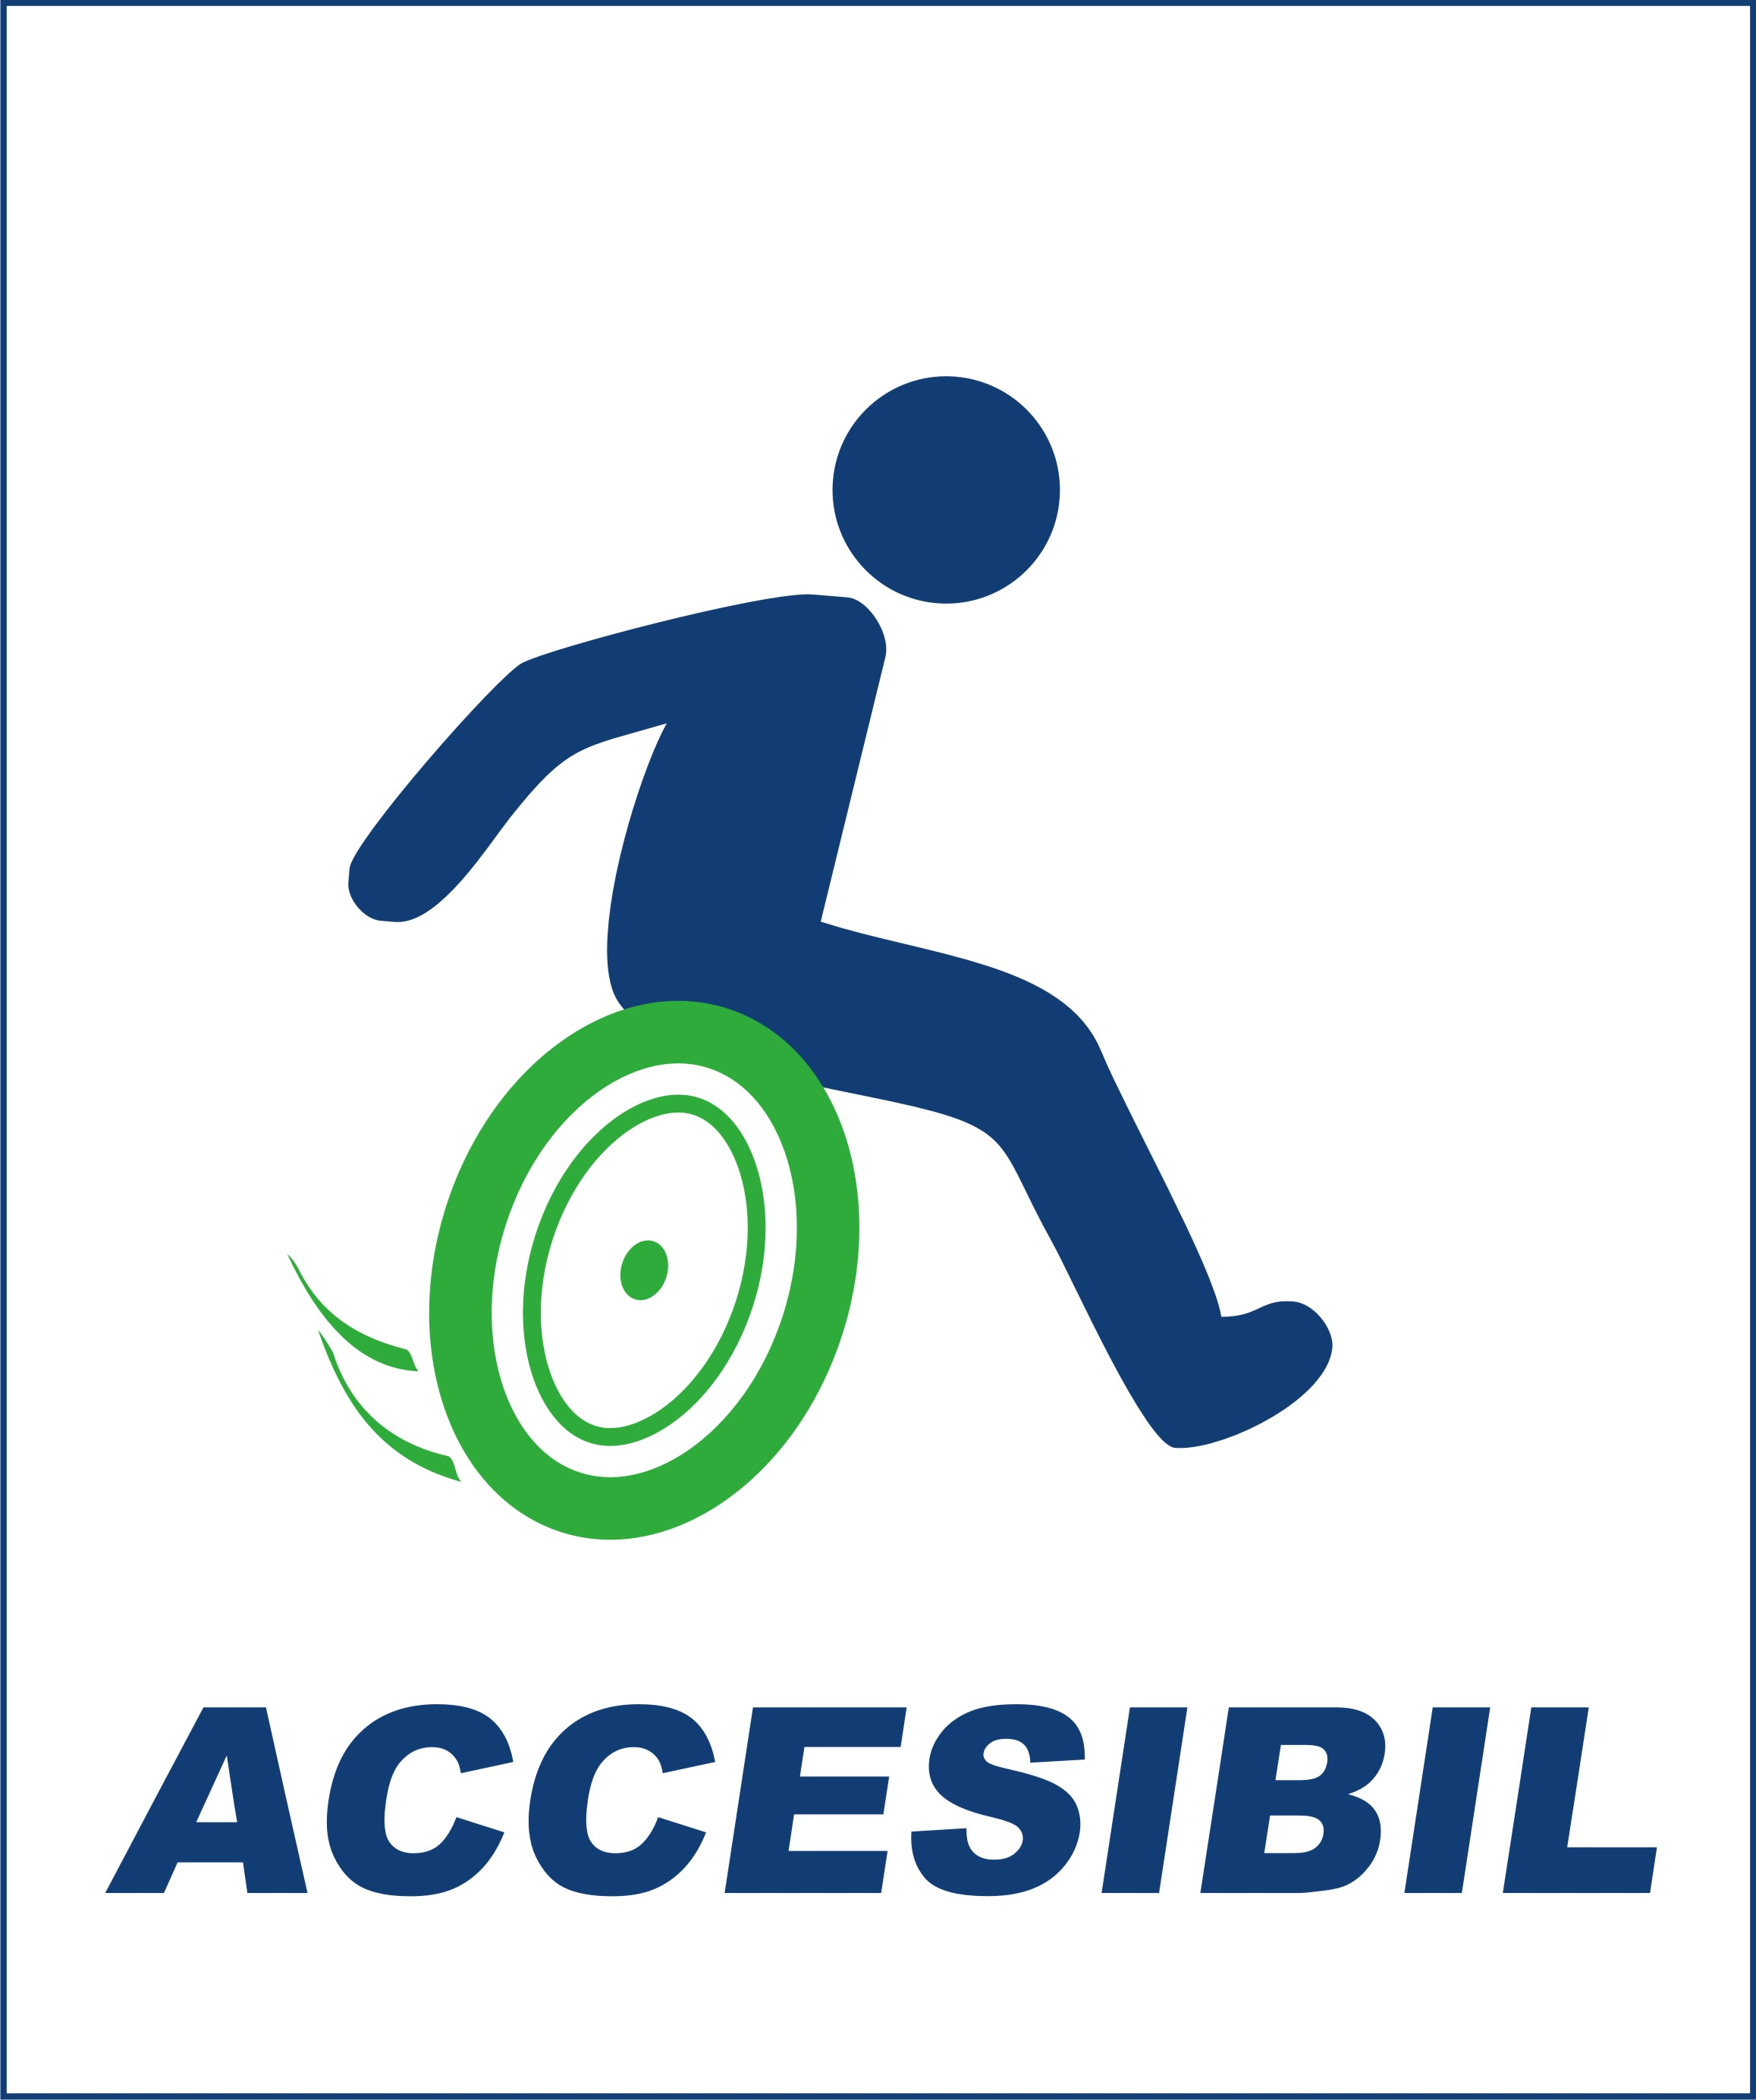 Accessibility logo developed by the USAID-funded MRF project